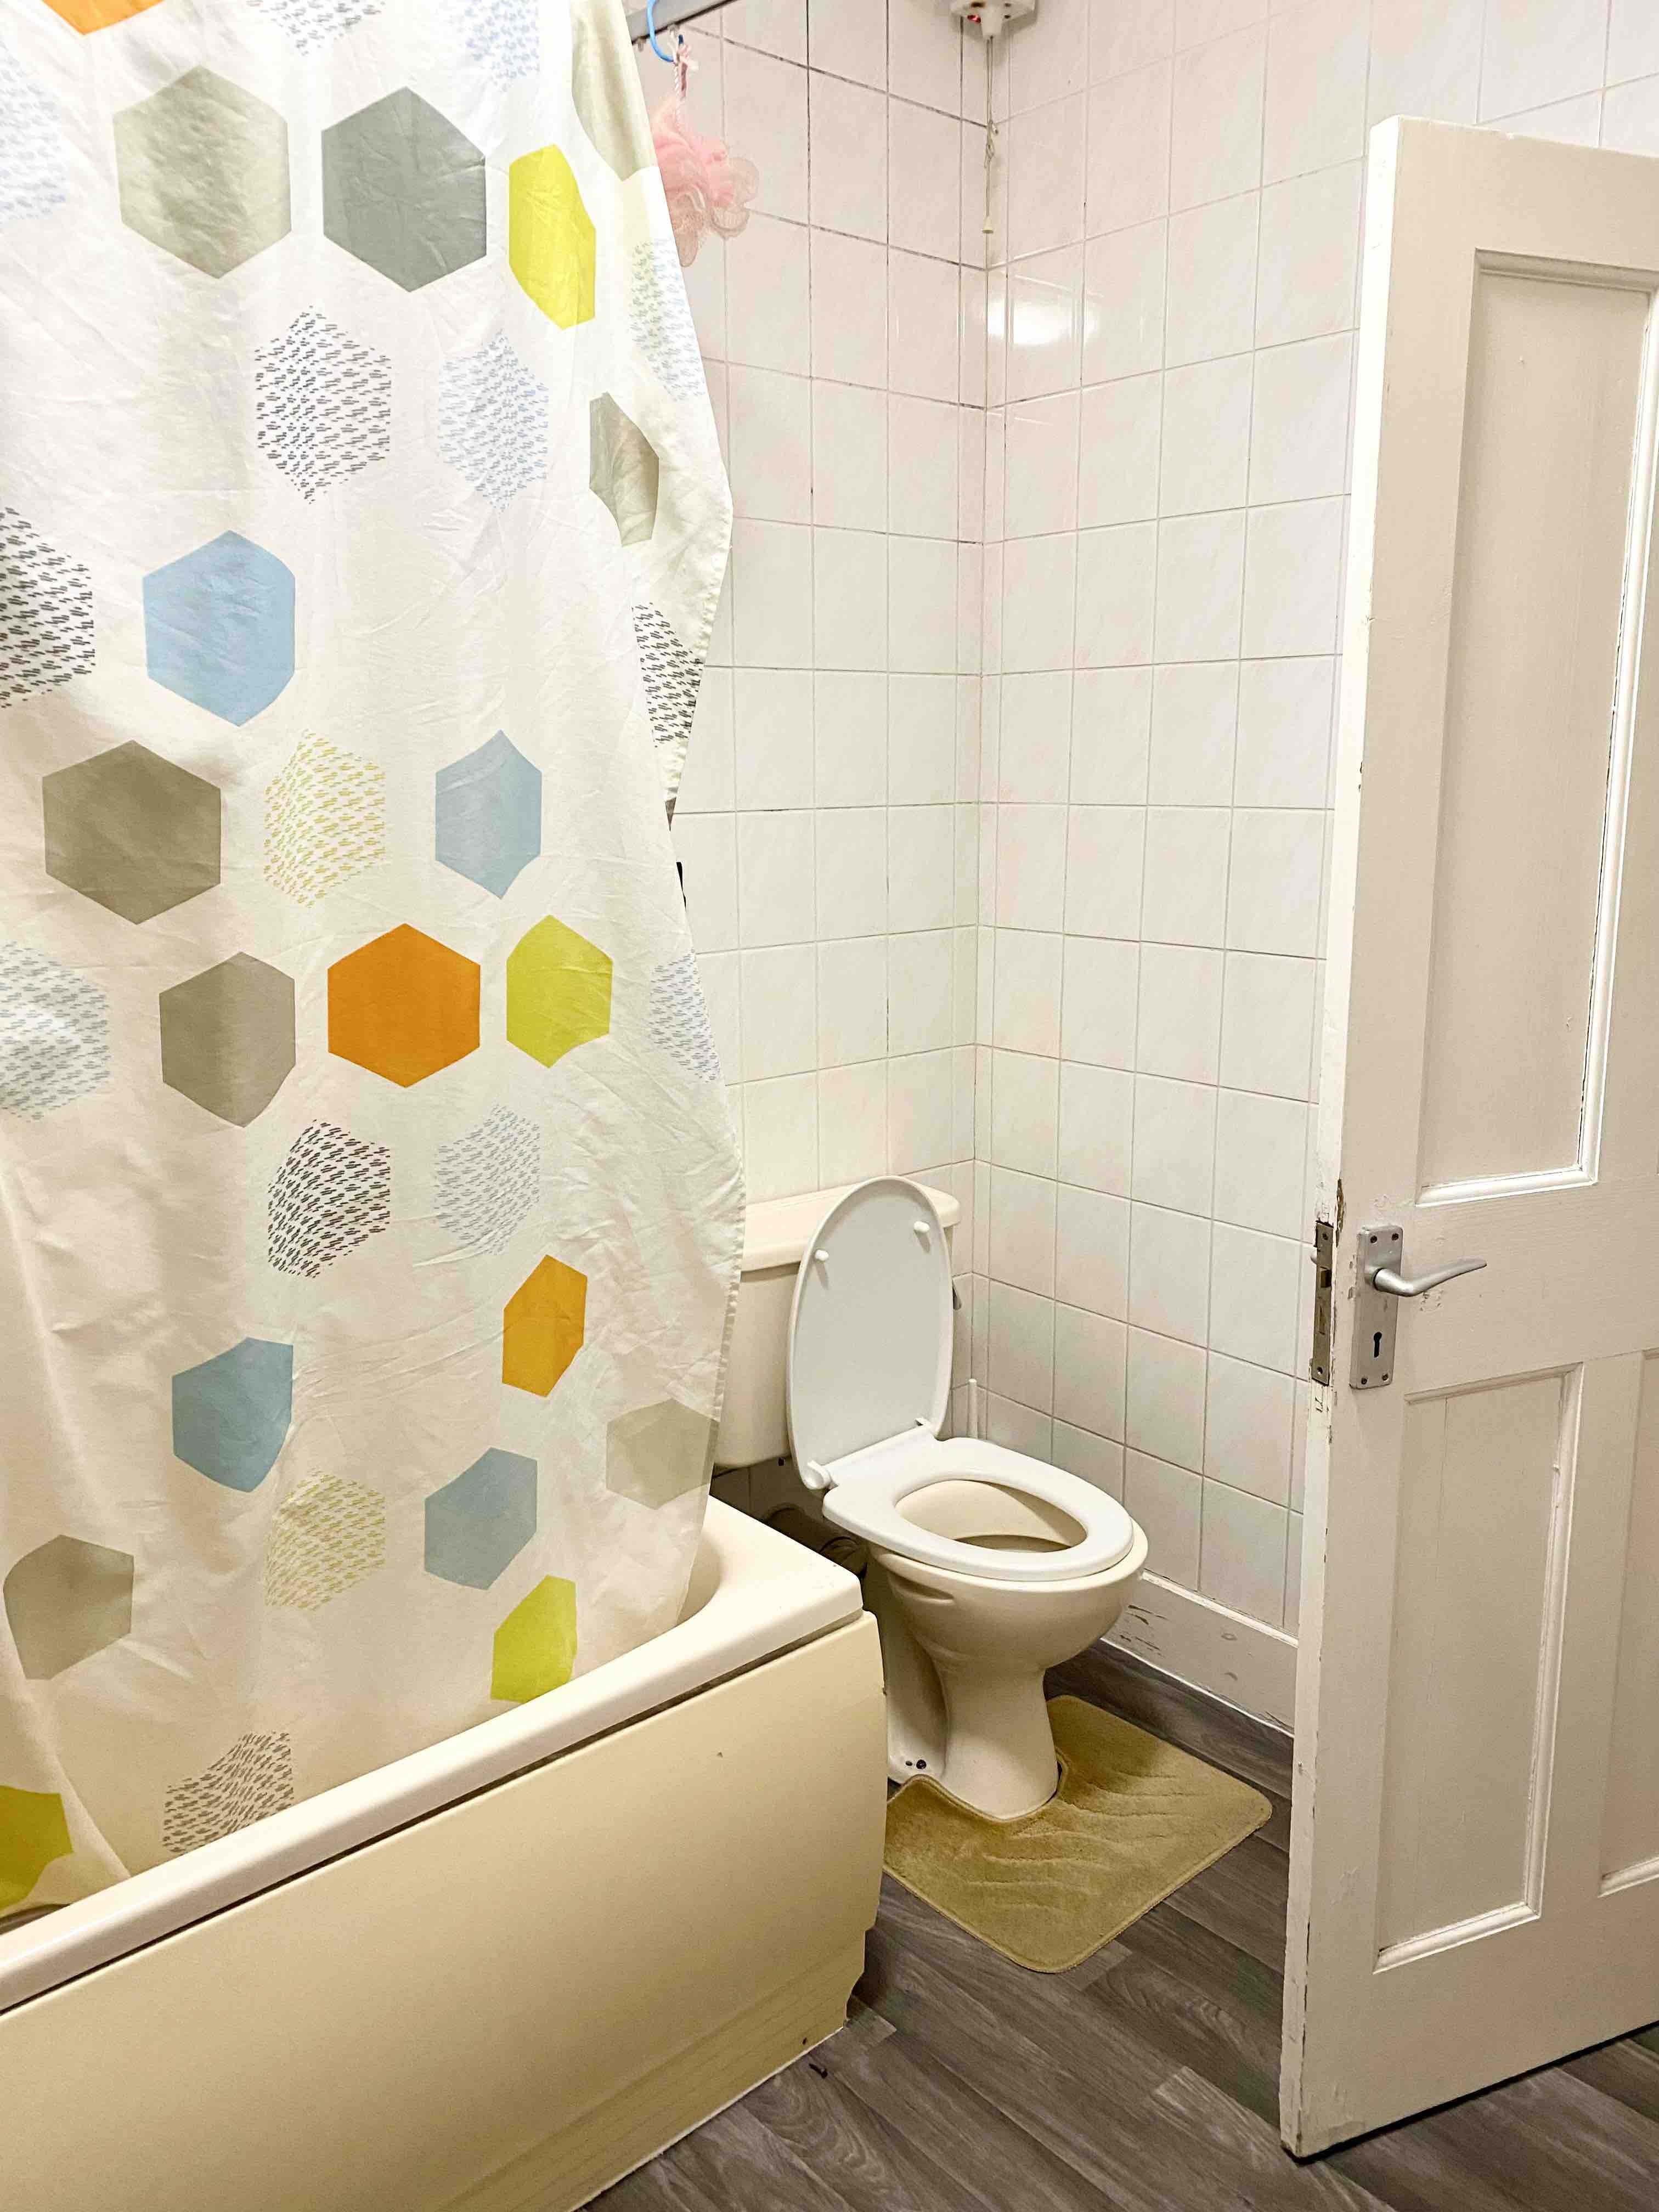 1 room in Golders Green, London, NW43RB RoomsLocal image